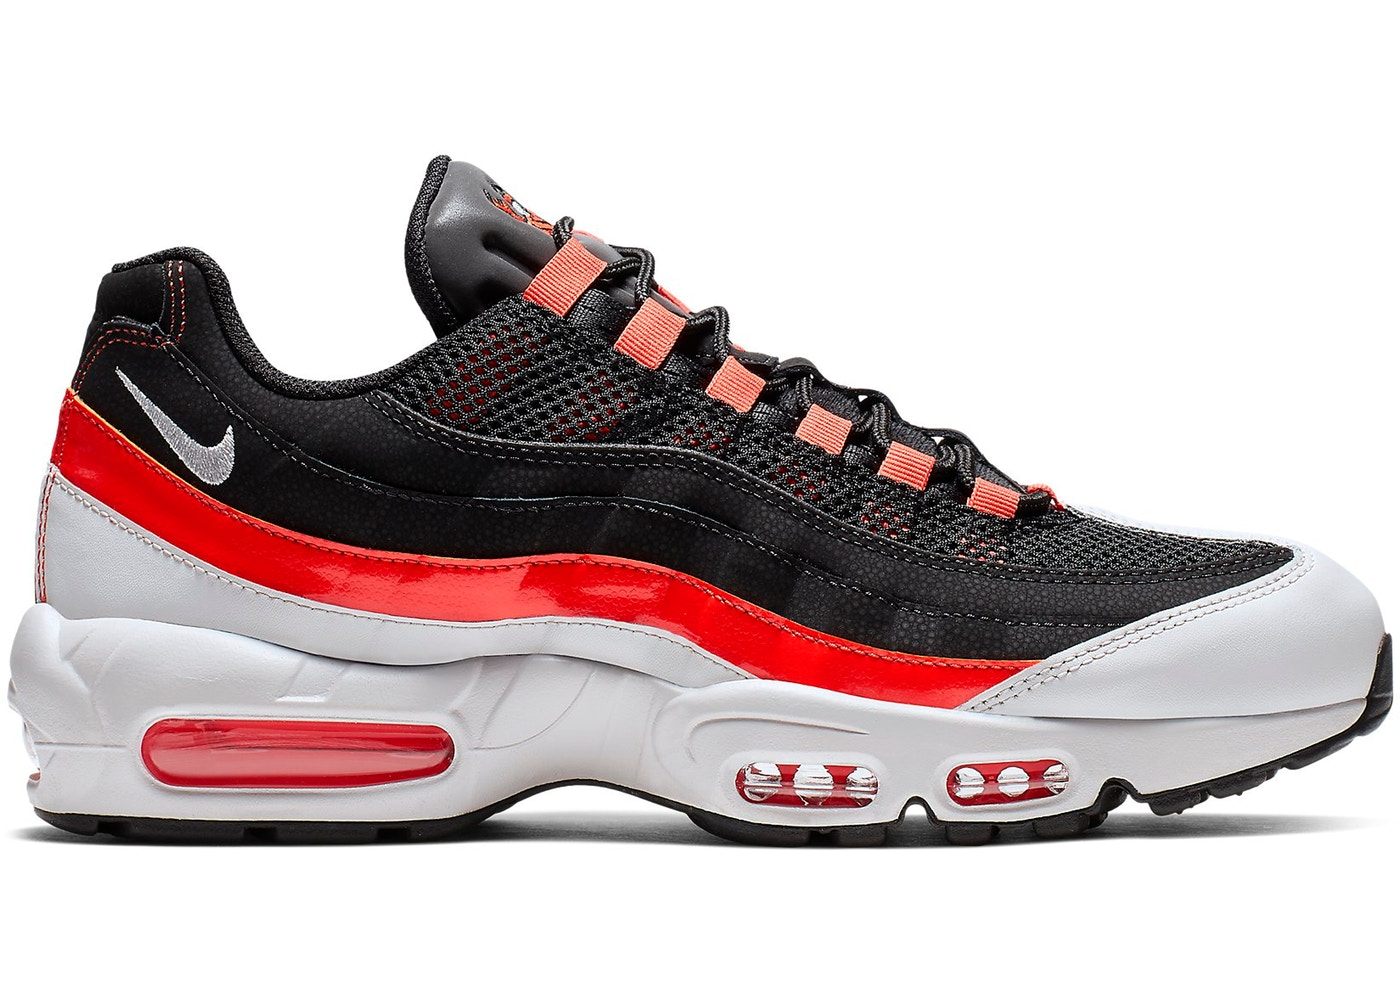 Air Max 95 Baltimore Away - CD7792-001 b71f3050d